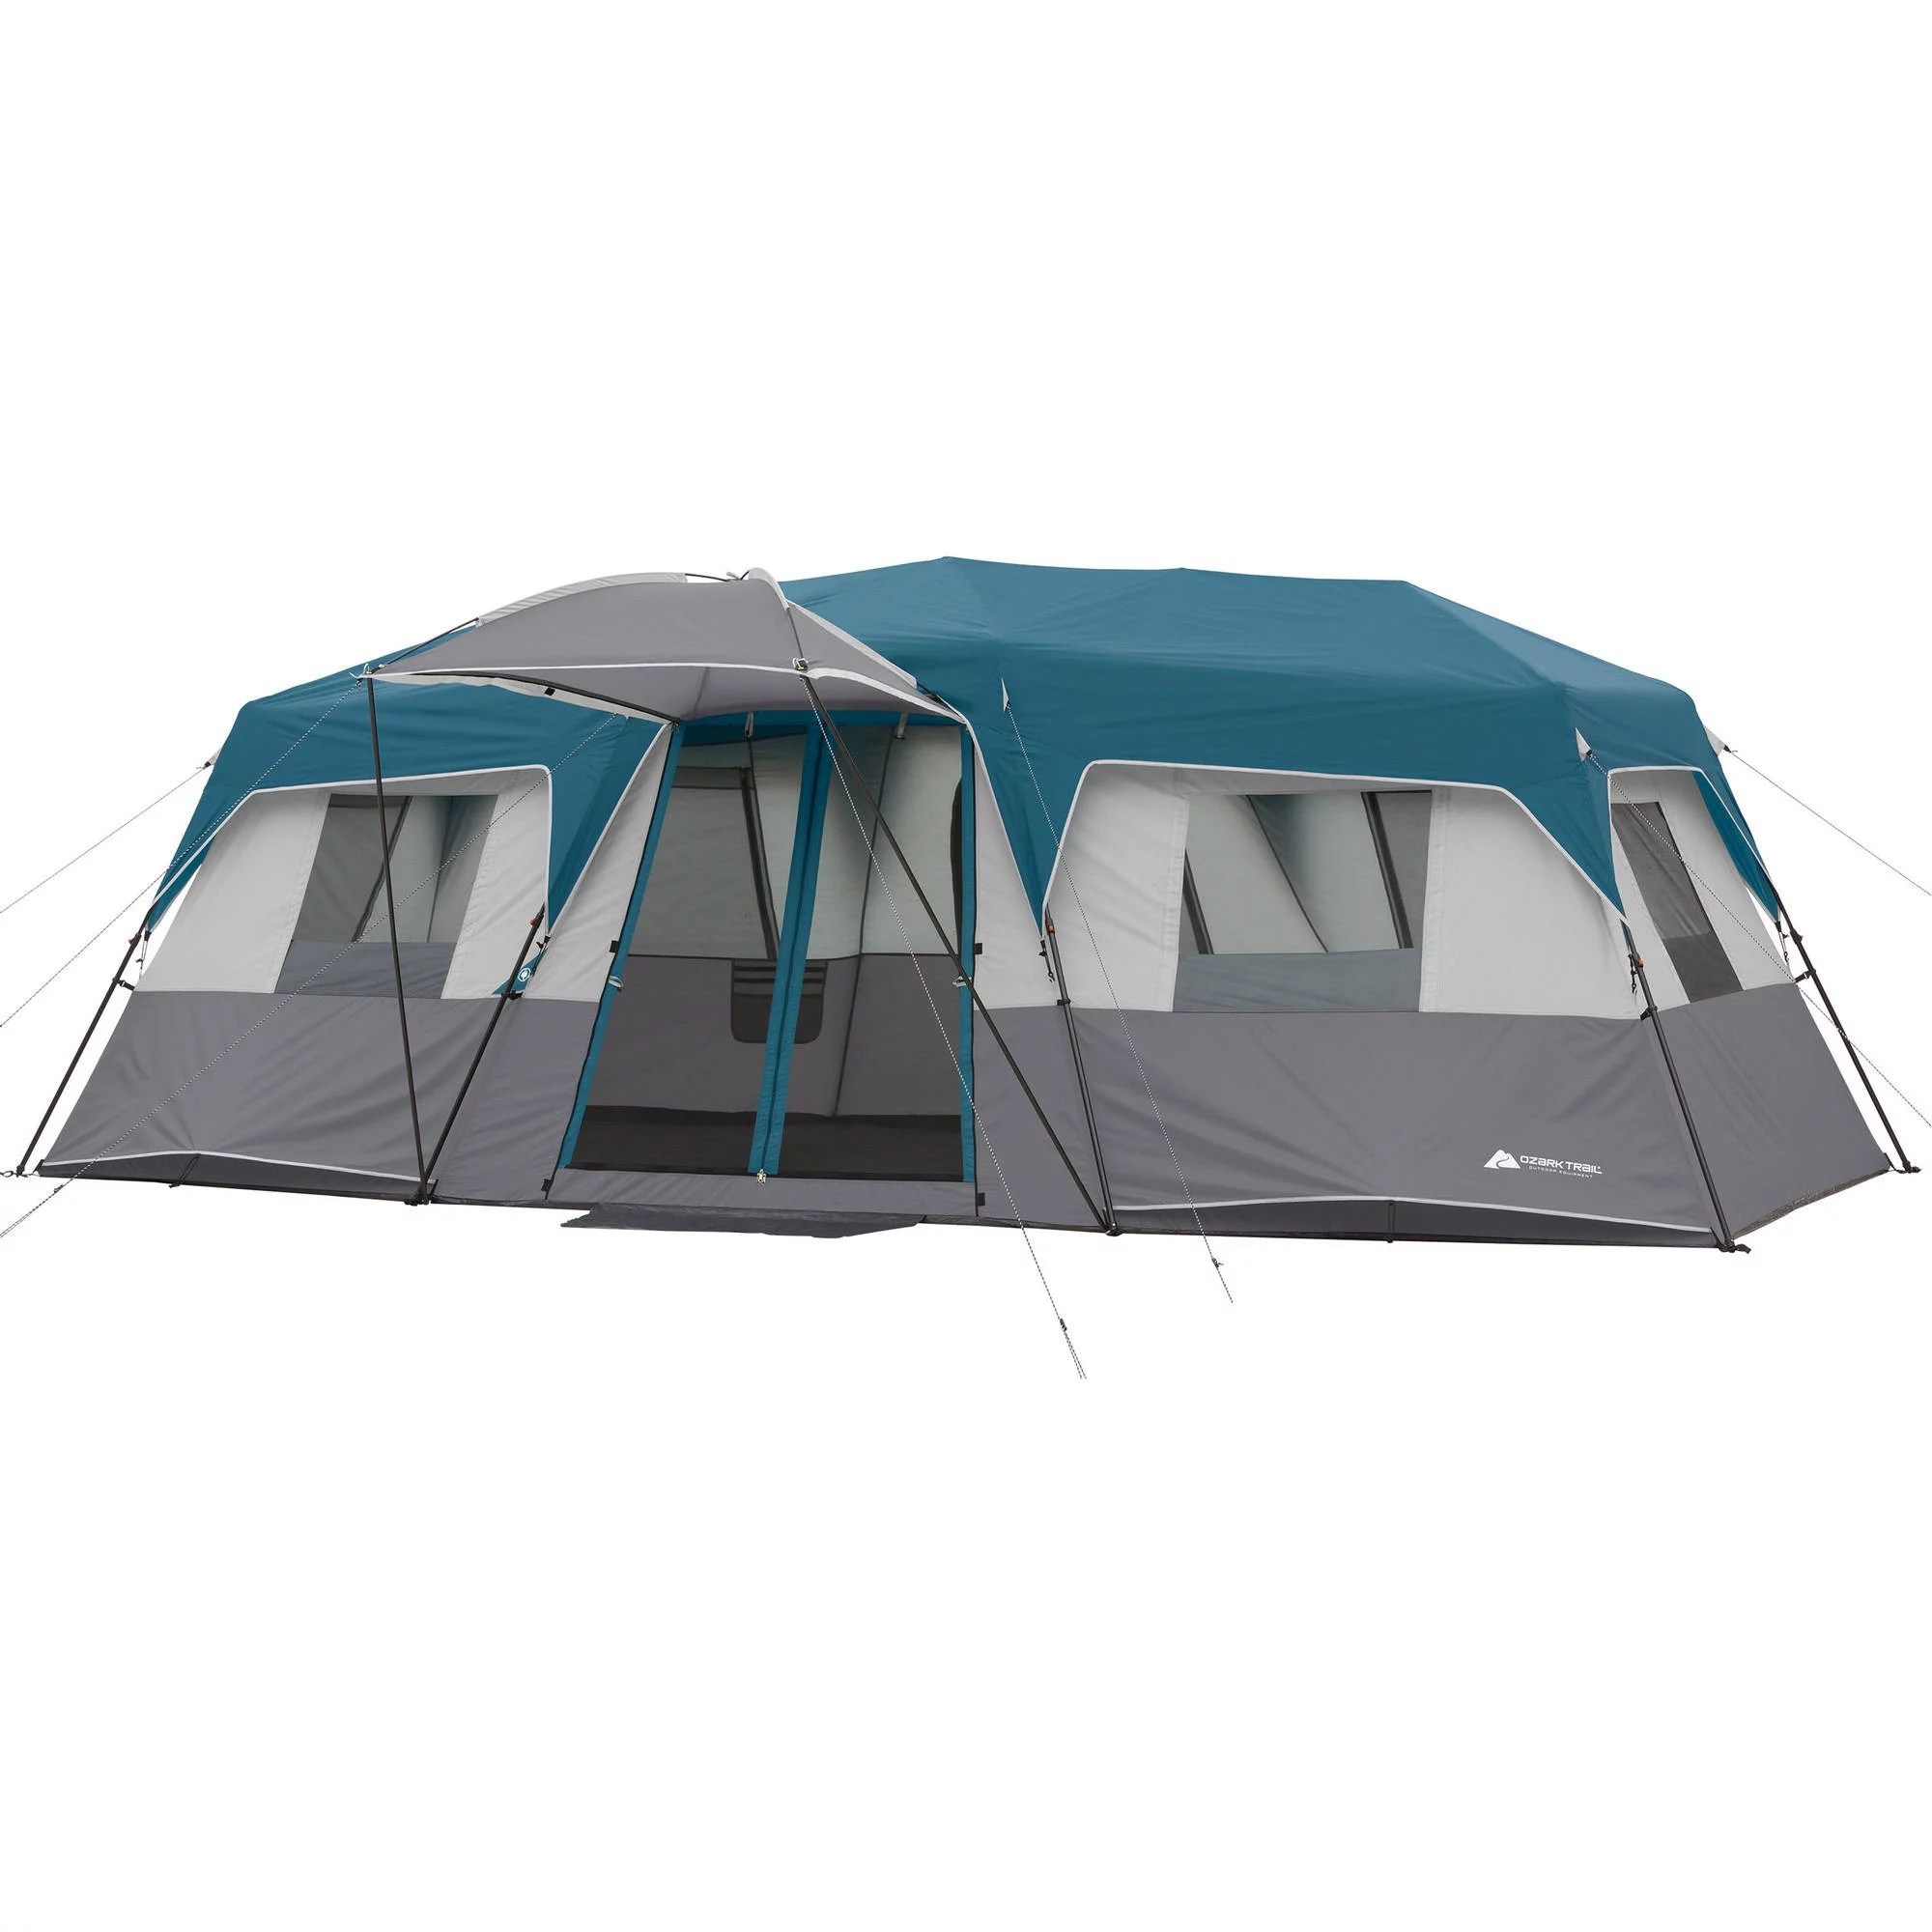 Ozark Trail 20u2032 x 10u2032 x 80u2033 Instant Cabin Tent Sleeps 12 ...  sc 1 st  Holiday Deals and More.com & Tons of Tents on Sale/Clearance/Rollback at Walmart! | Holiday ...